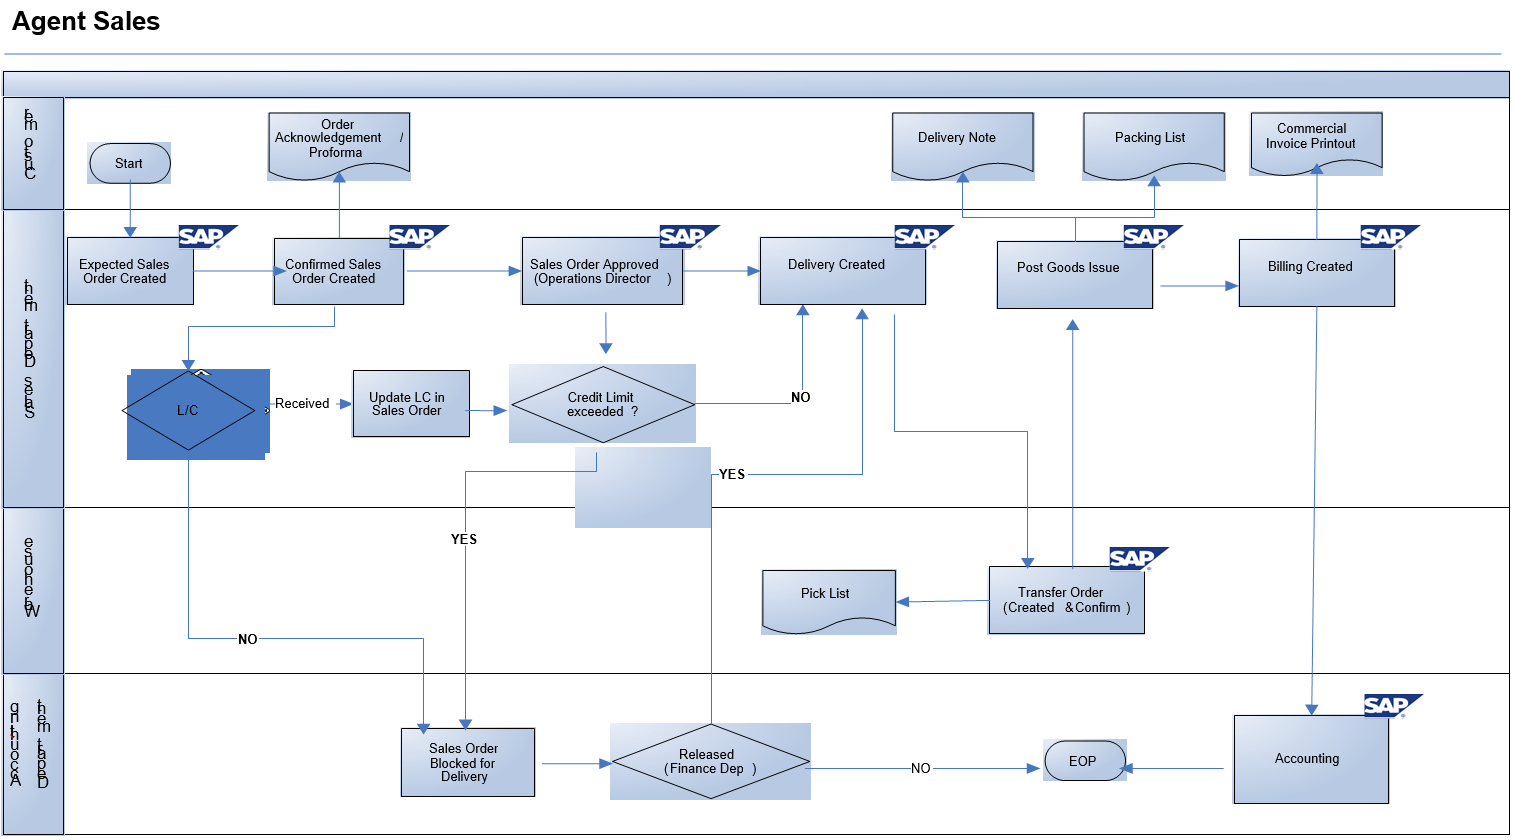 Sap sd business blueprint export sales process scenario and flow export sales process flow diagram in sap sd malvernweather